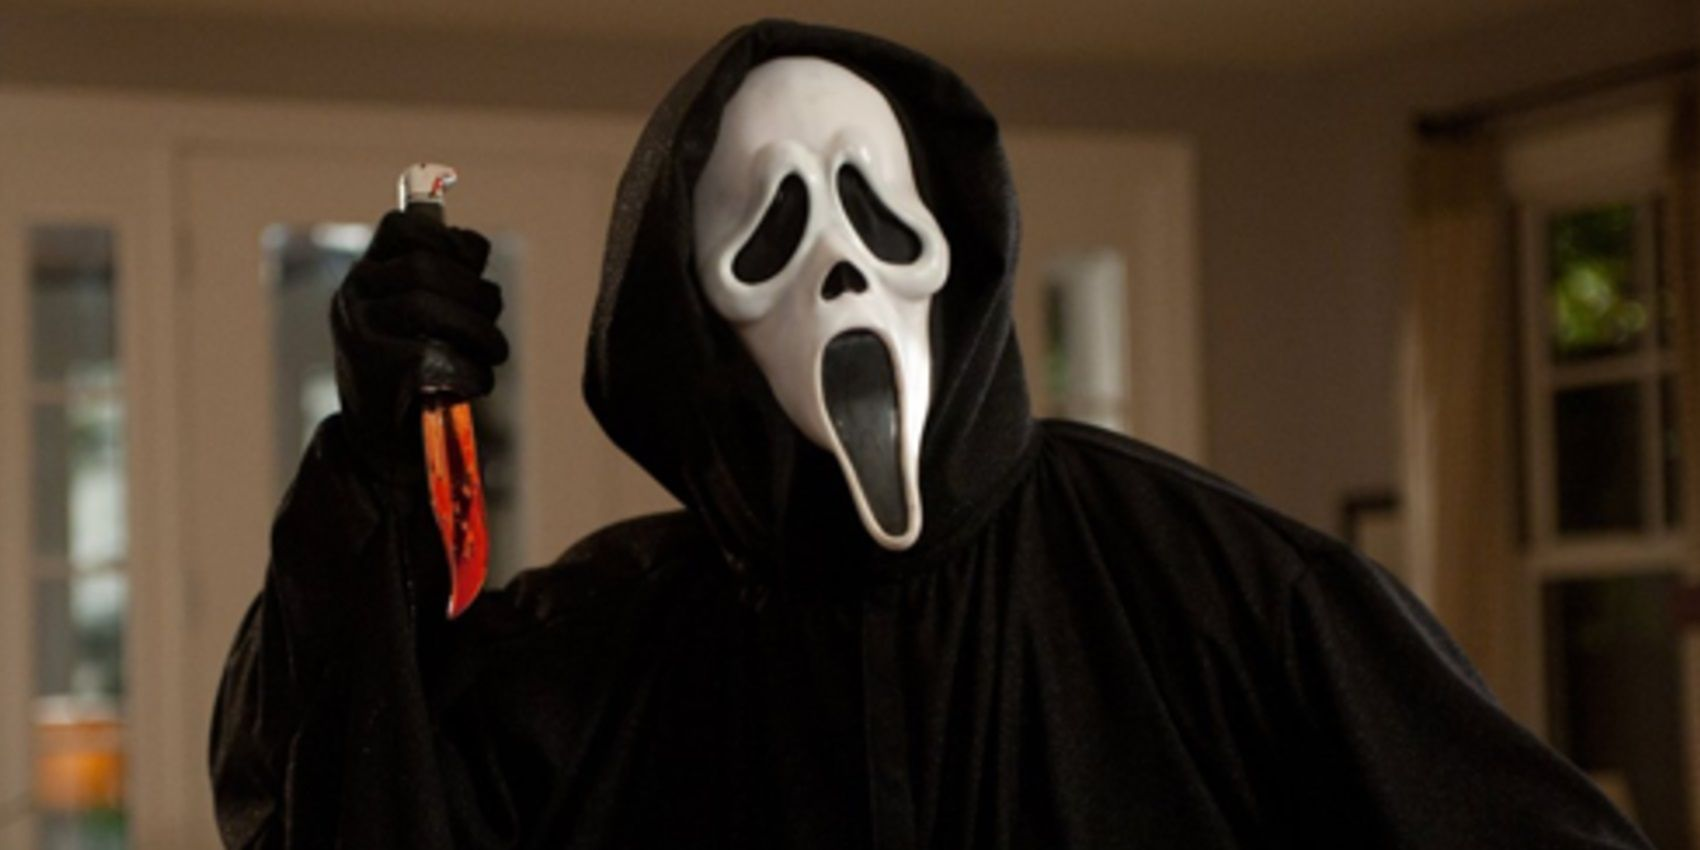 Are The Scream Movies & Shows On Netflix, Prime, Or Hulu? Where To Watch Online